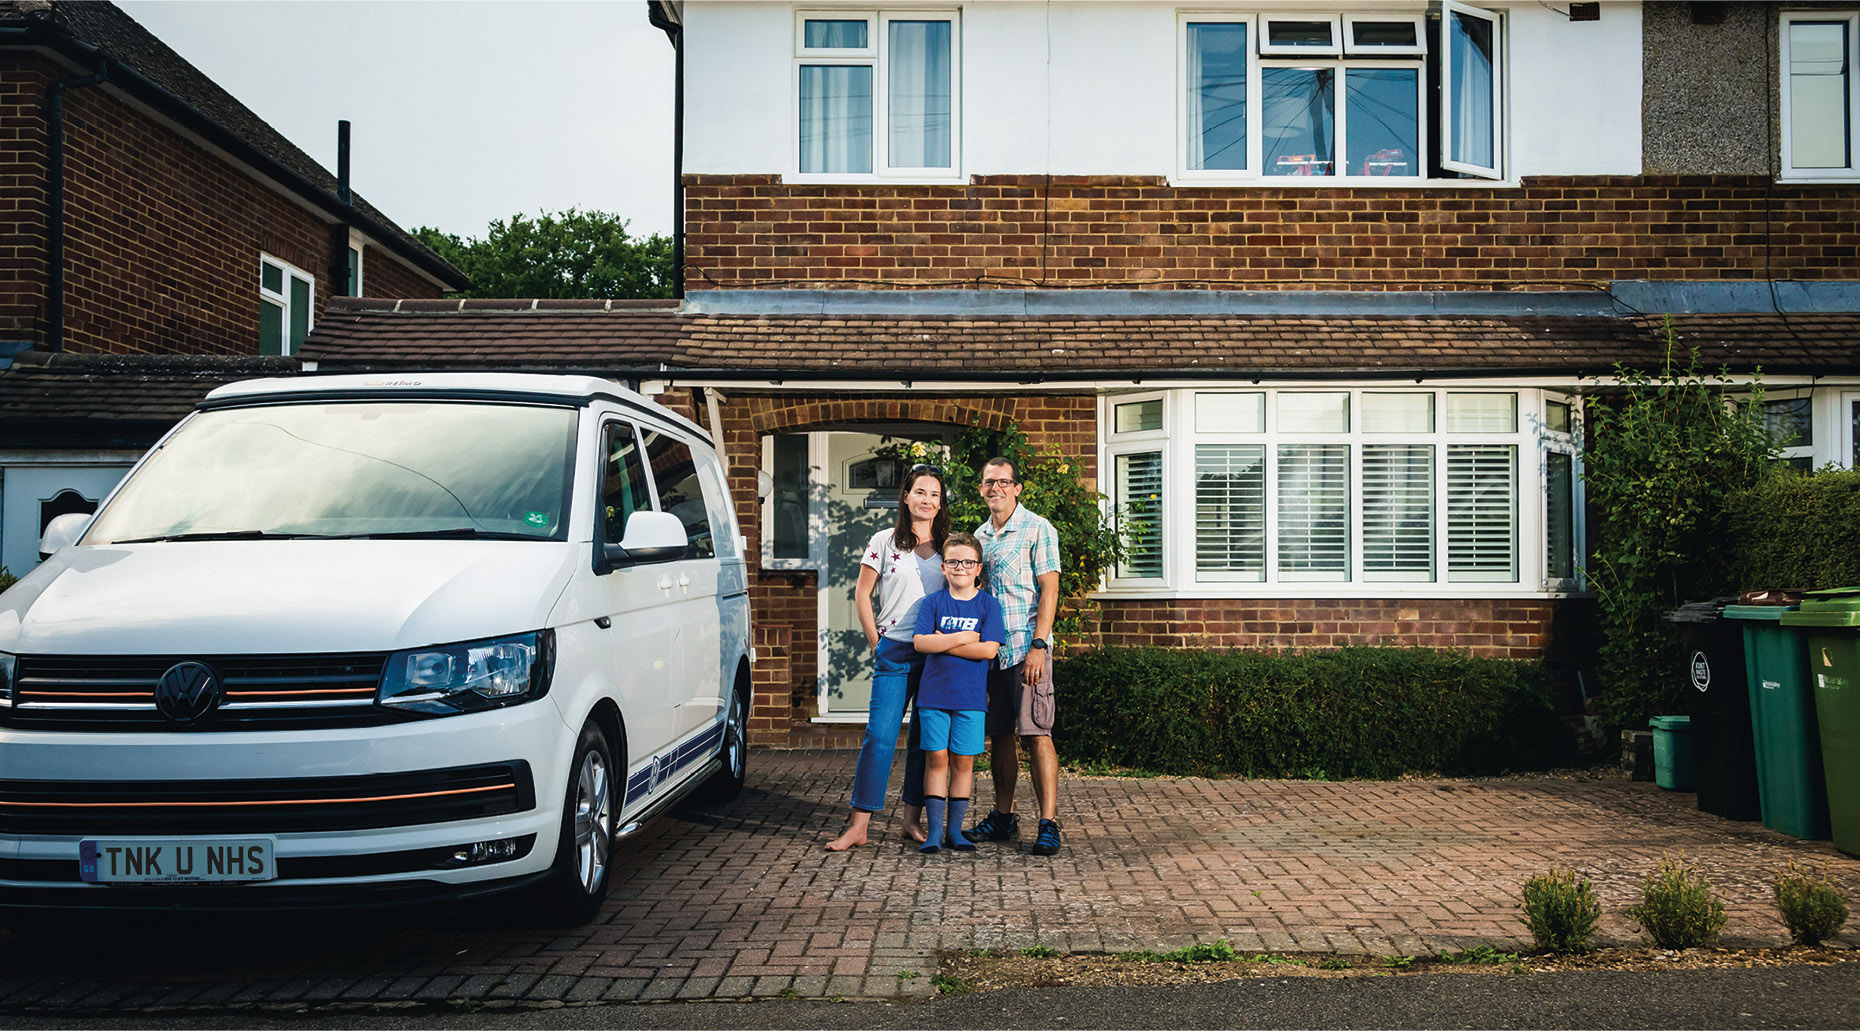 Ashtead Doorstep Portraits 95